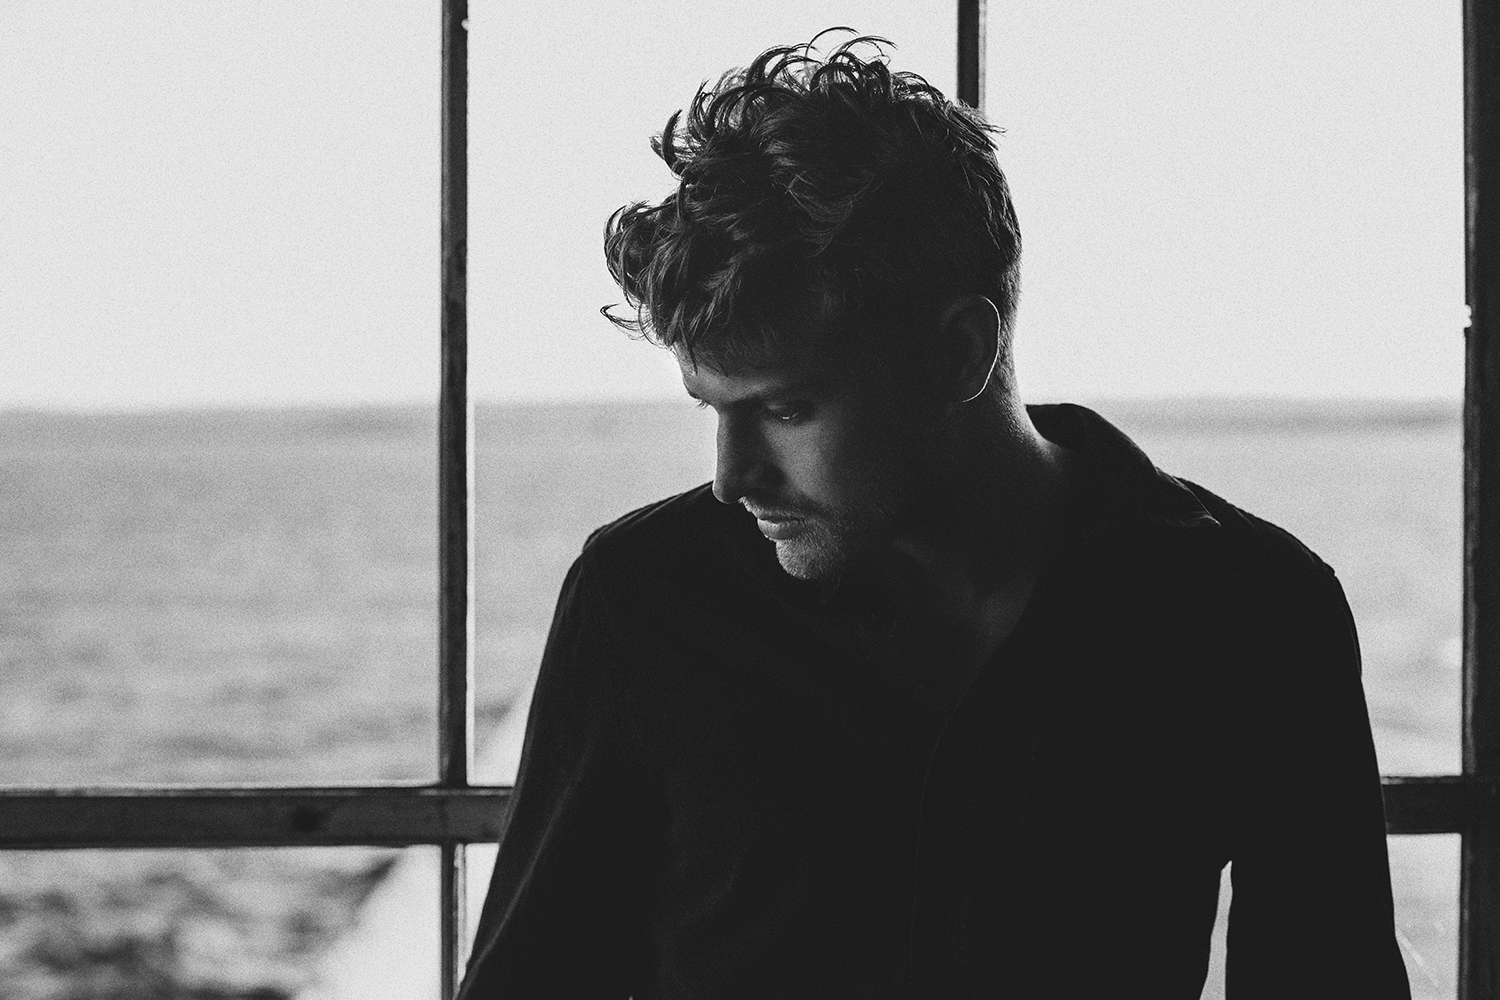 PREMIERE: Sandro Cavazza – Don't Hold Me (Live Session)